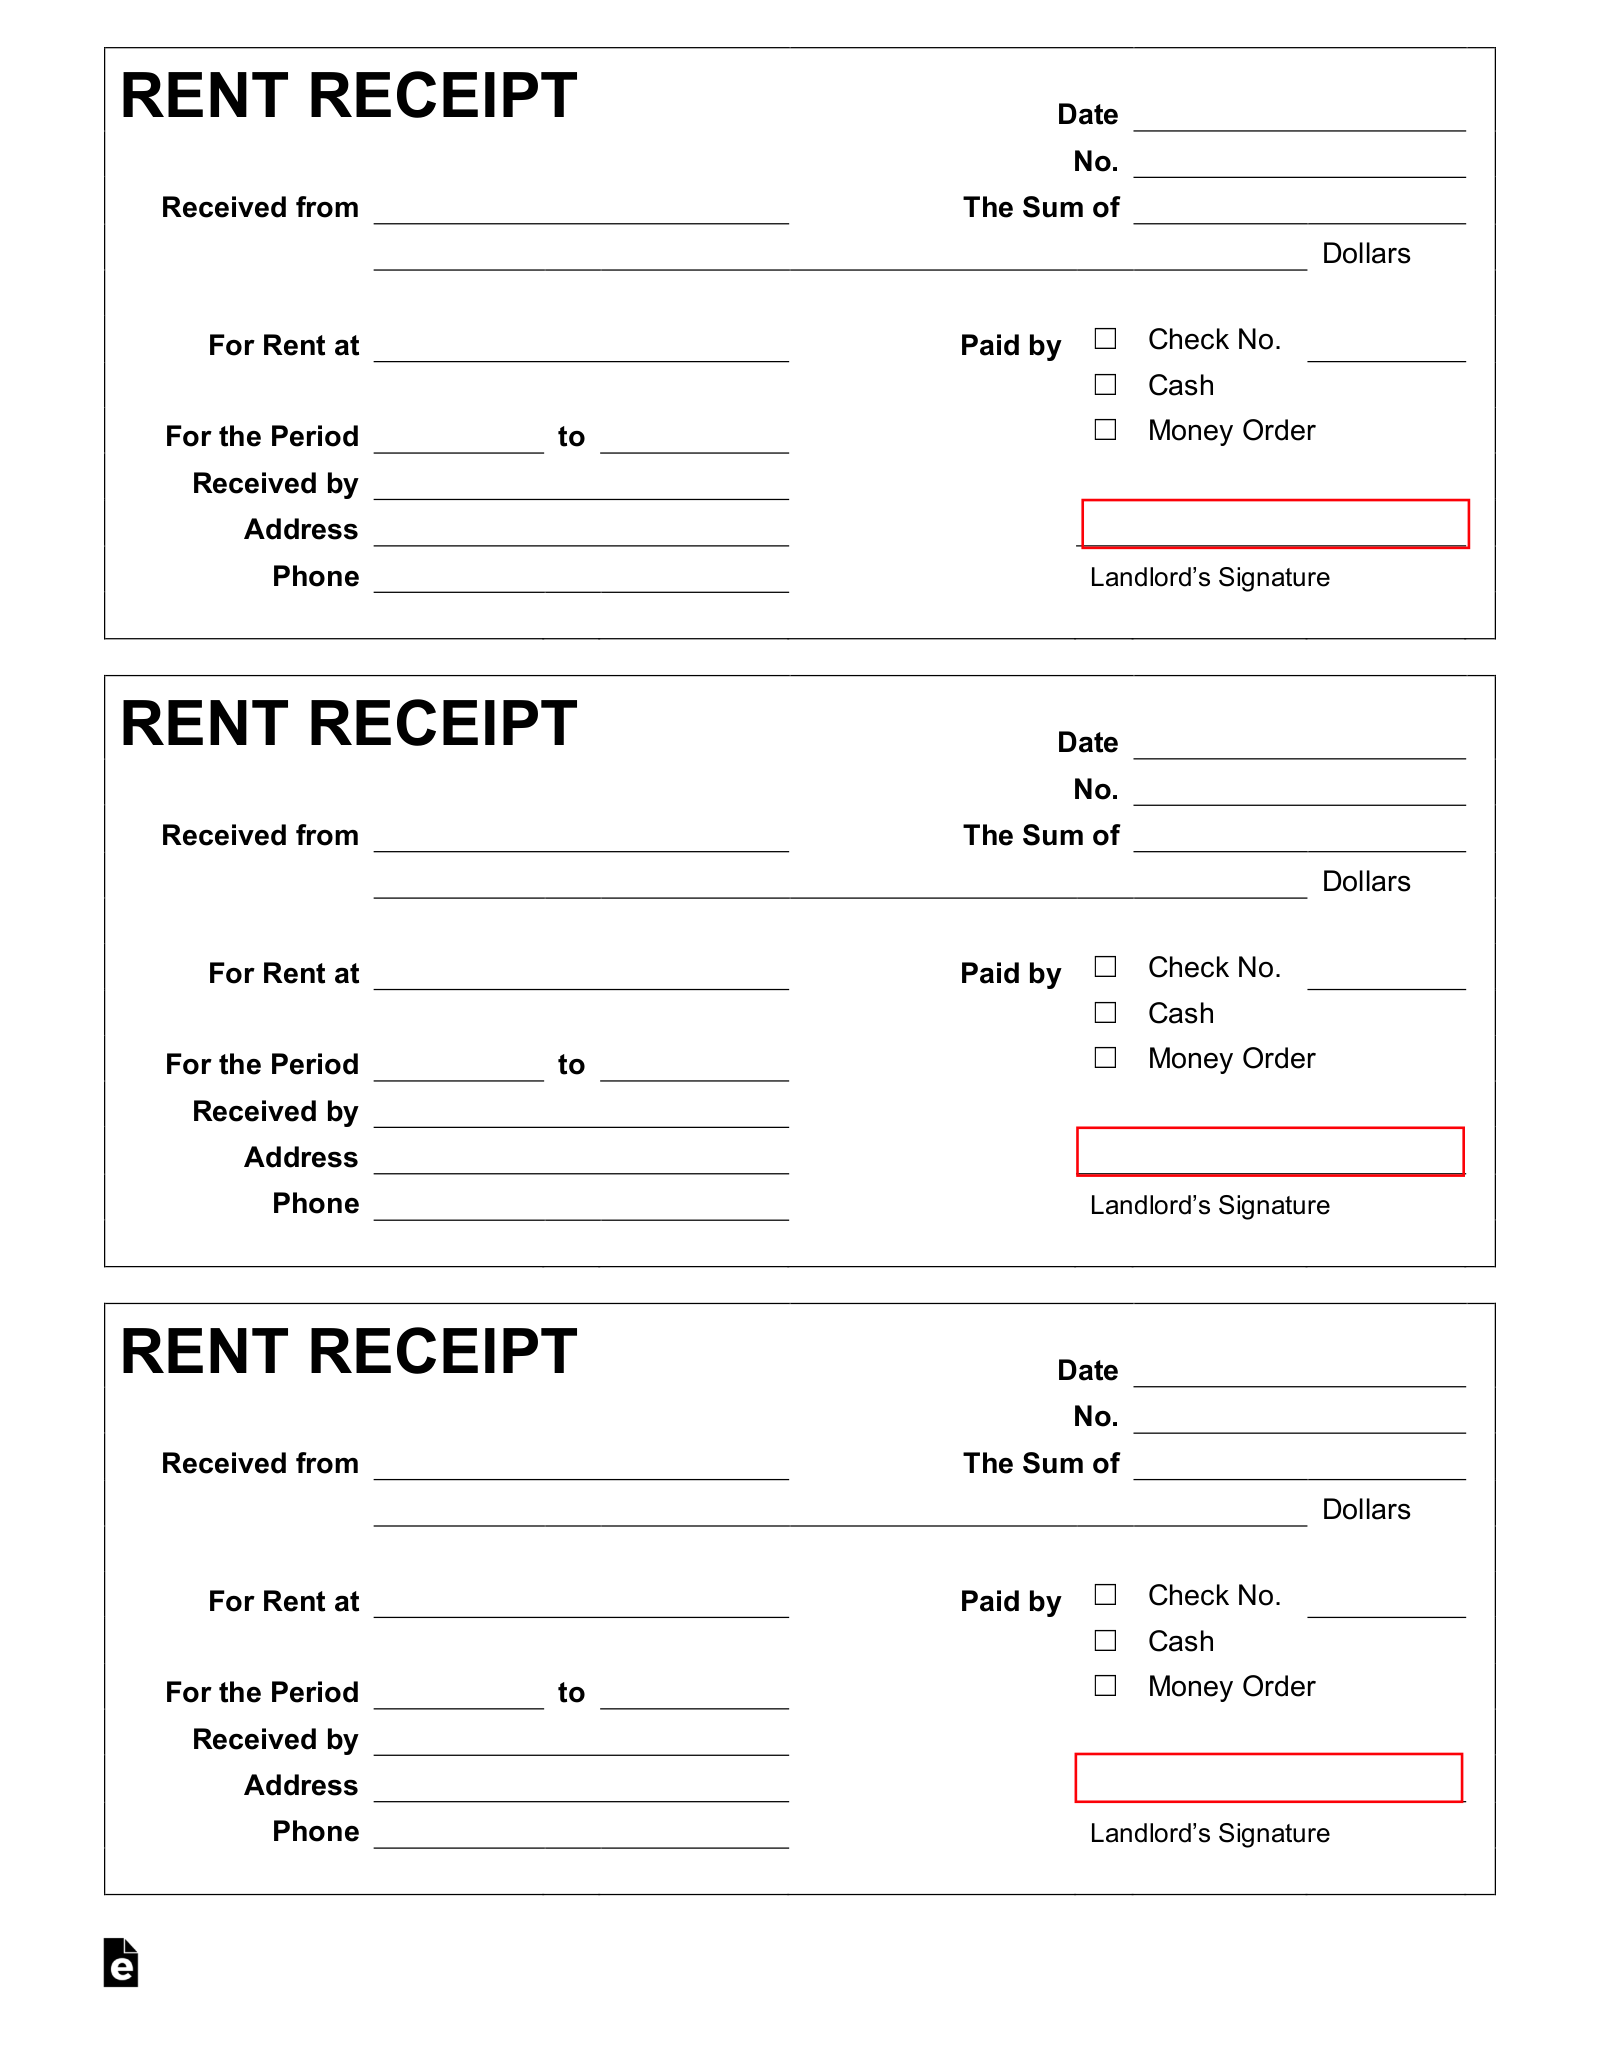 Template For Rent Receipt from eforms.com